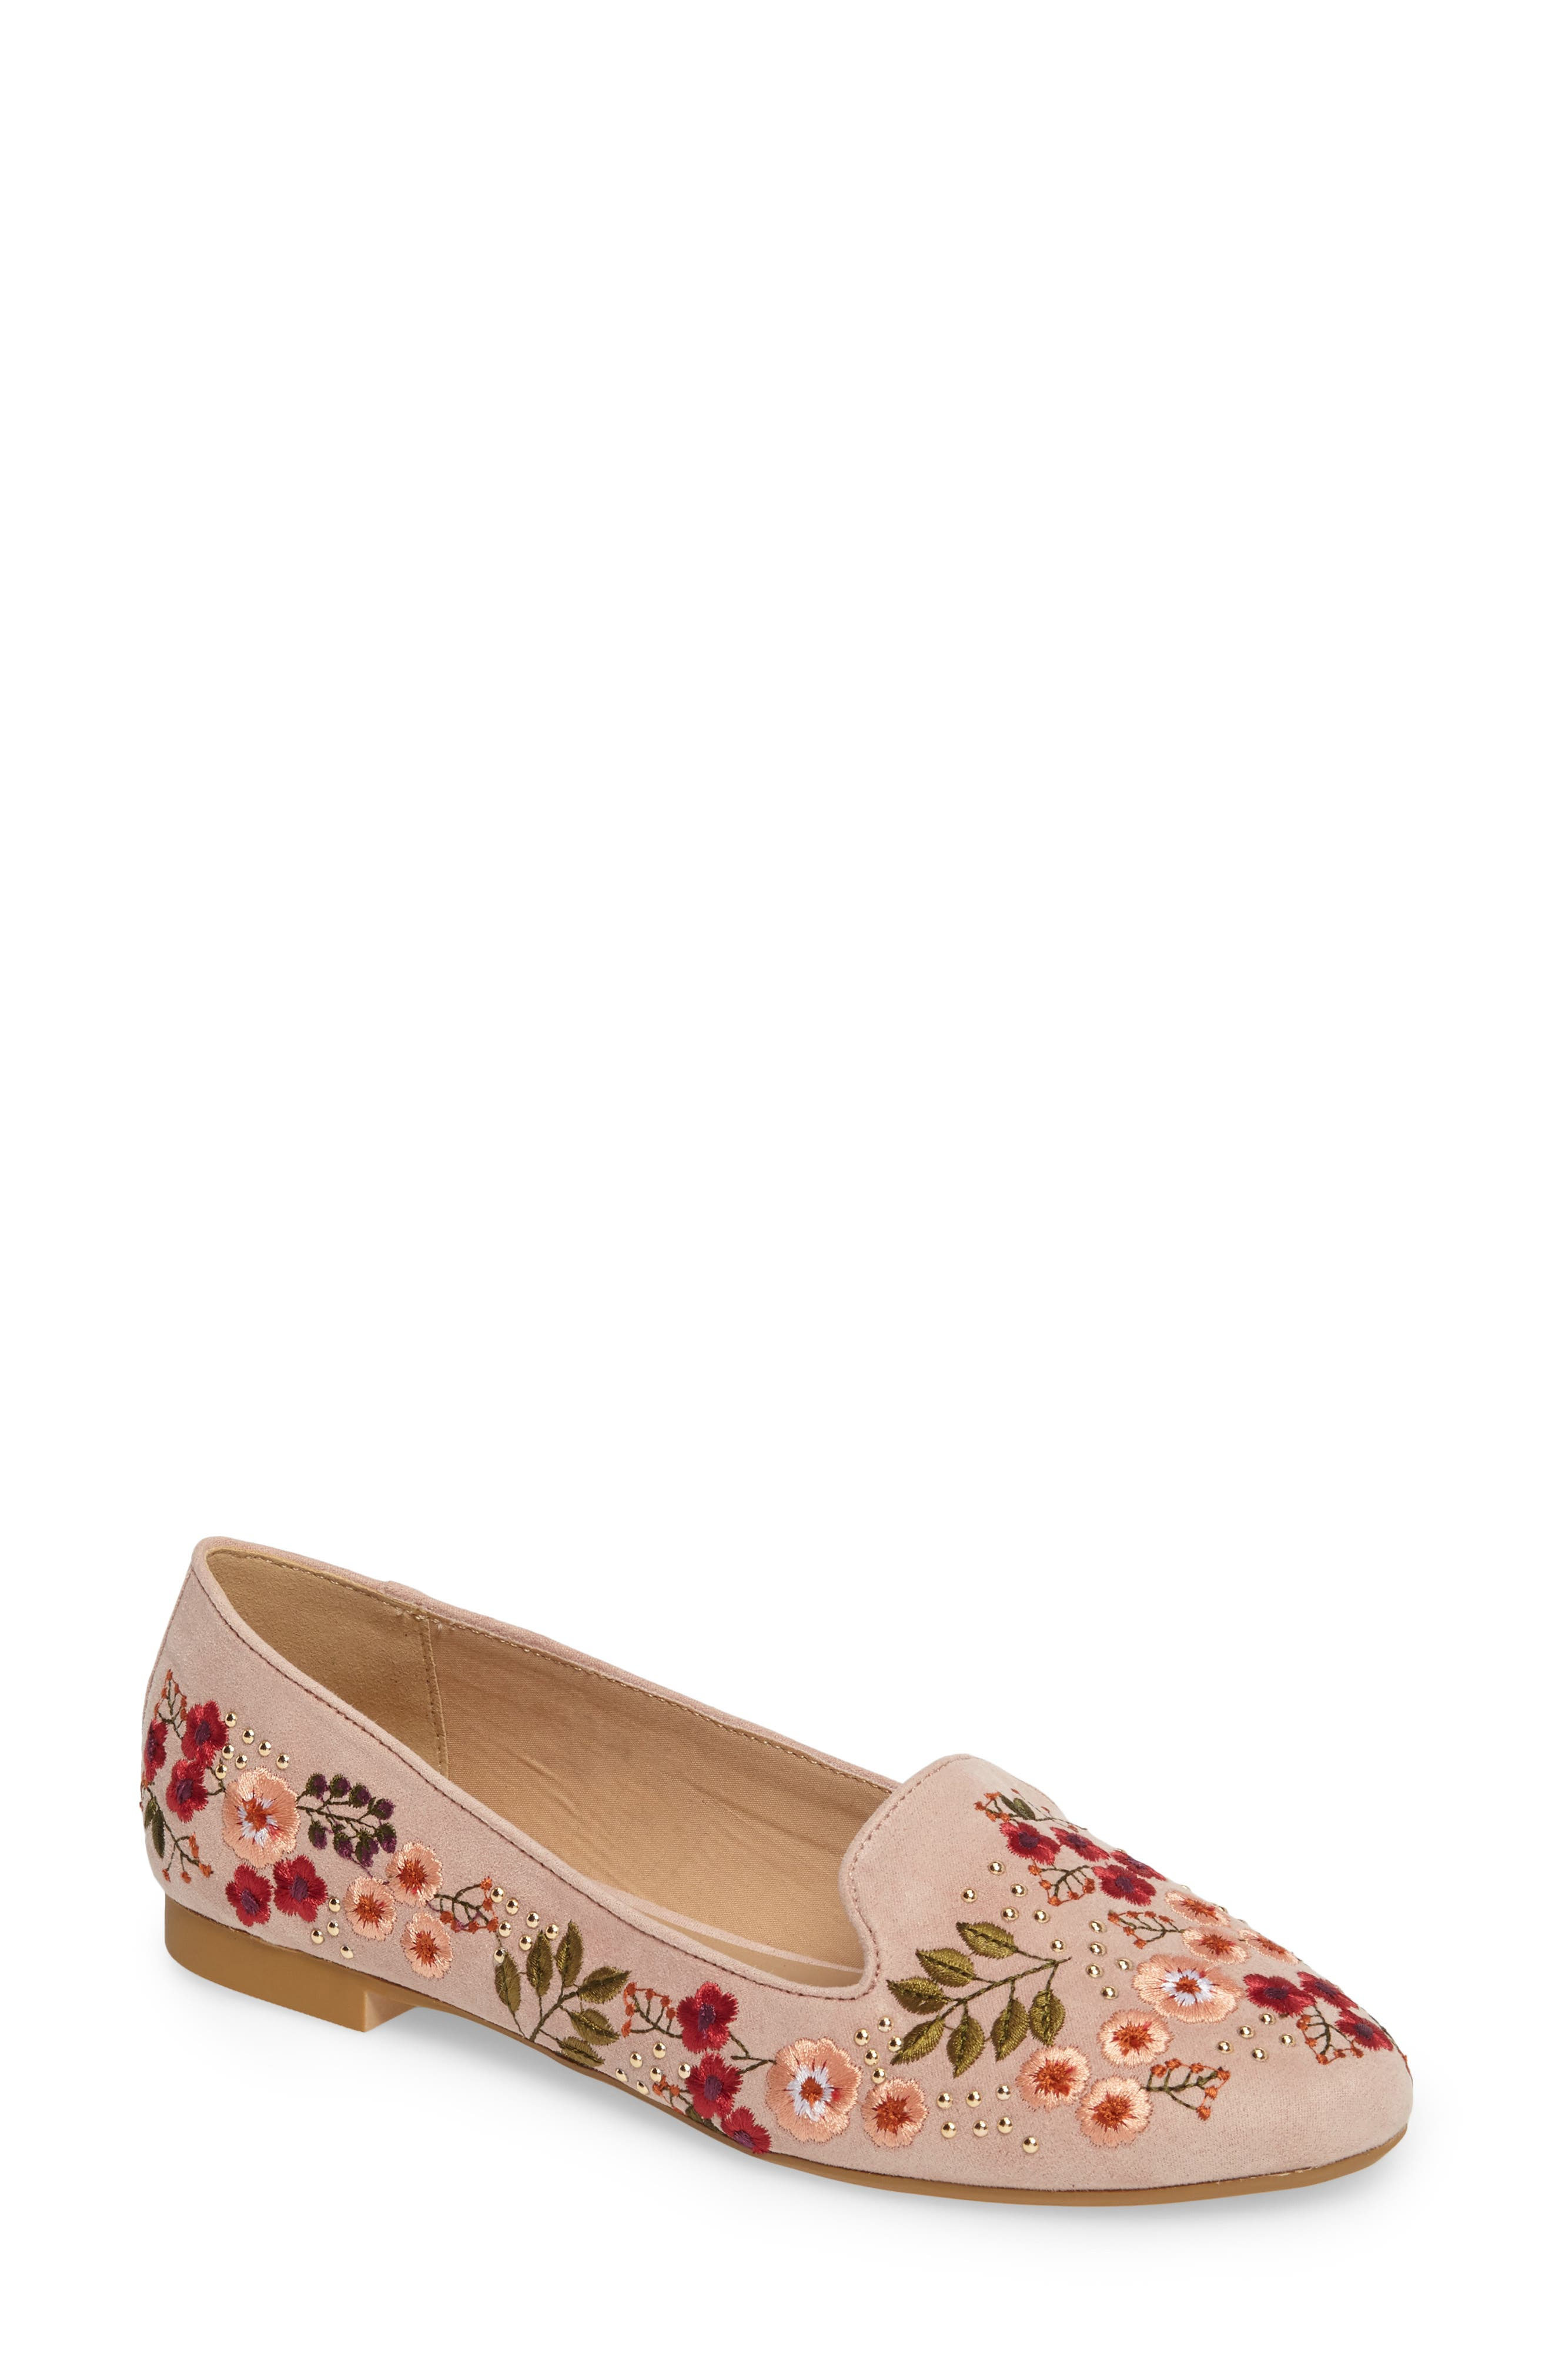 Alternate Image 1 Selected - Topshop Sugar Embroidered Smoking Slipper (Women)